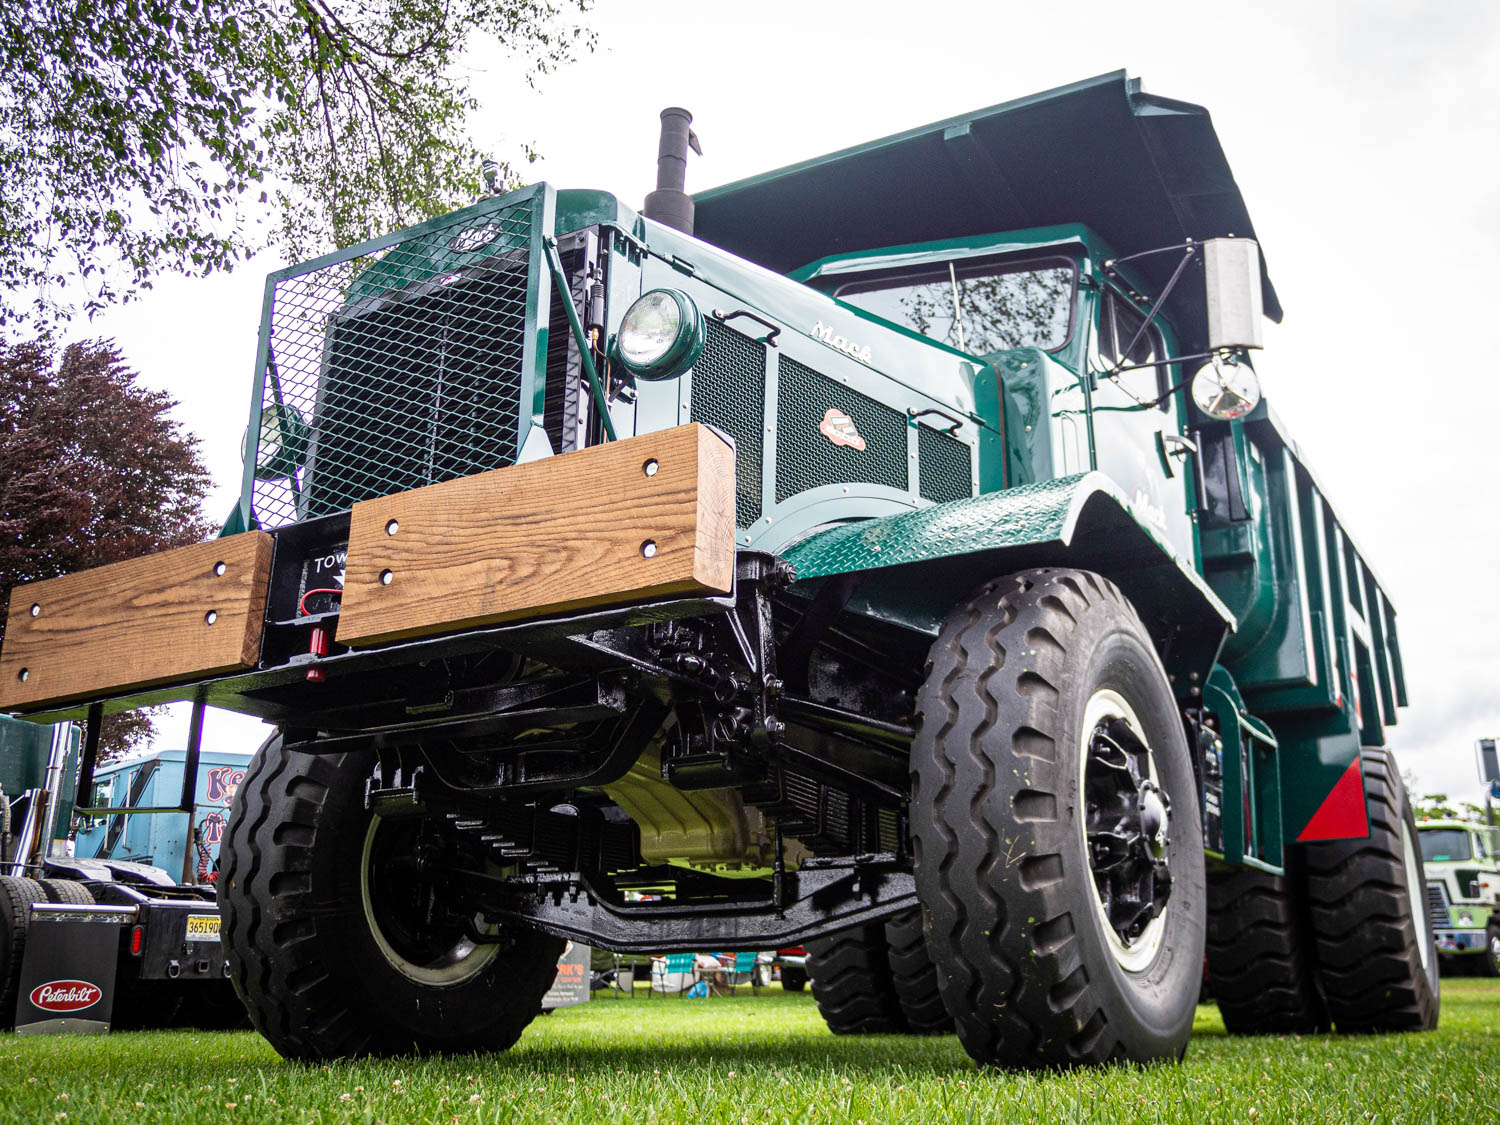 One of the coolest dump trucks you'll ever see is this 1949 Mack LRX.